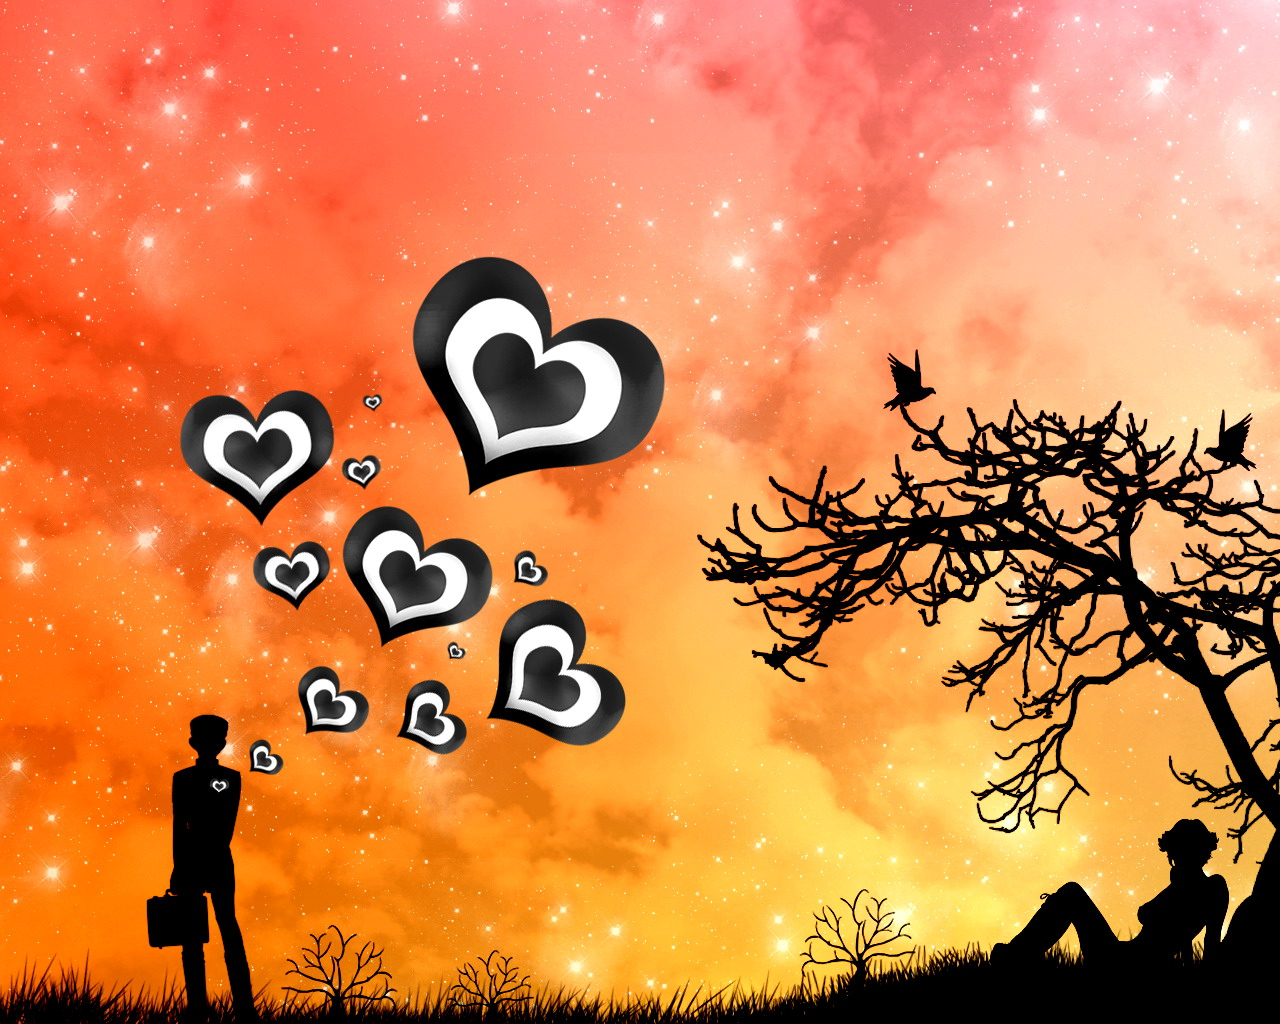 Download Wallpaper I Love You Cartoon - love-love-wallpapers-10  You Should Have_58713   .jpg